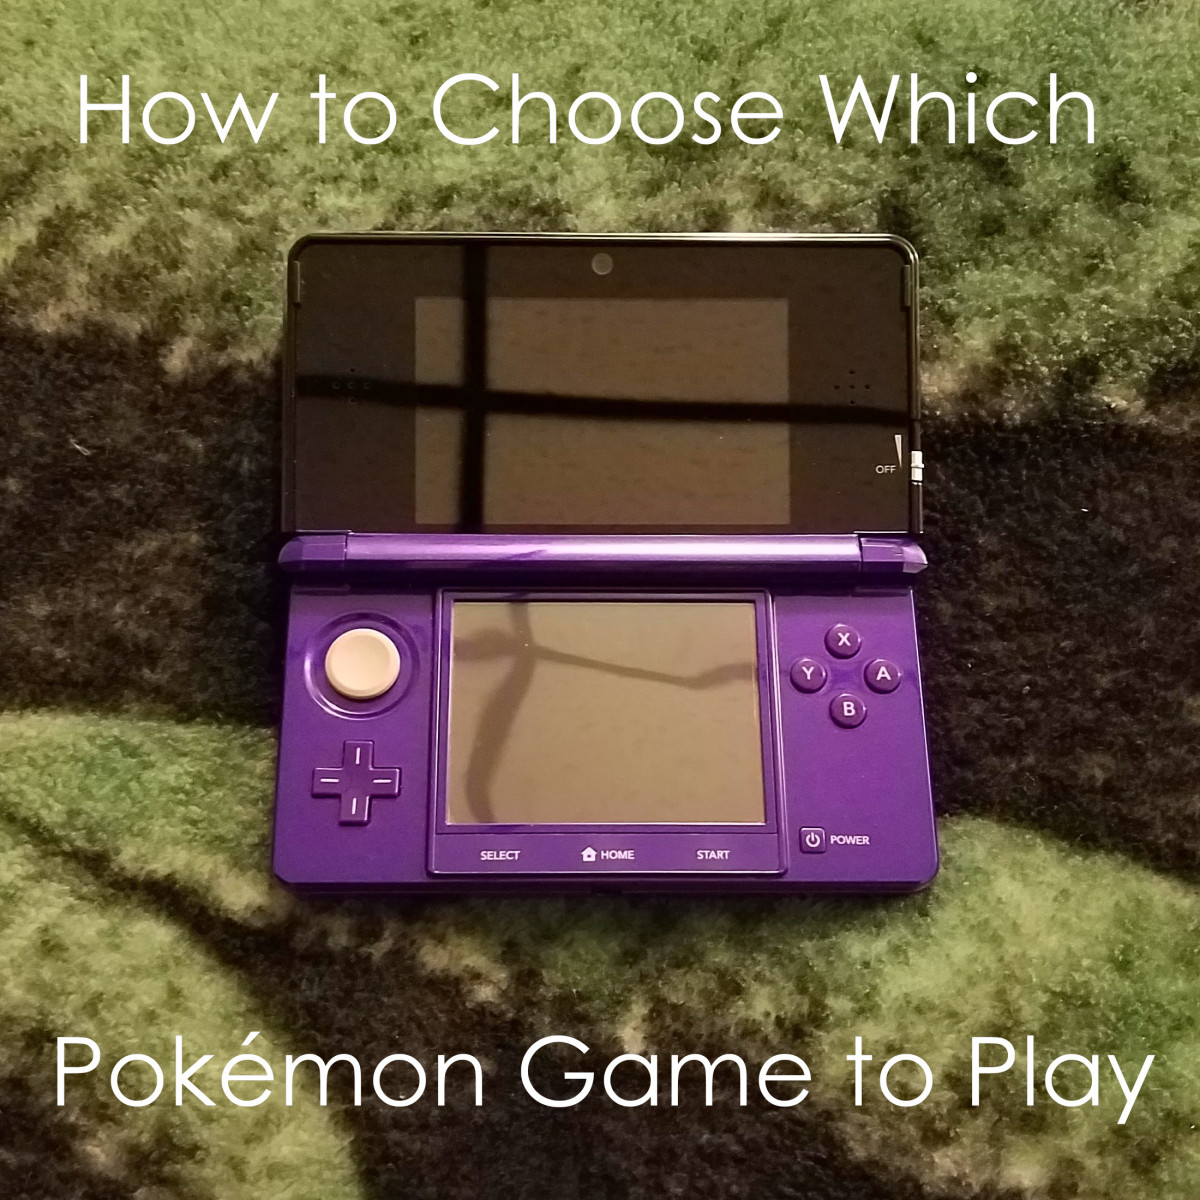 How to Choose Which Pokémon Game to Play